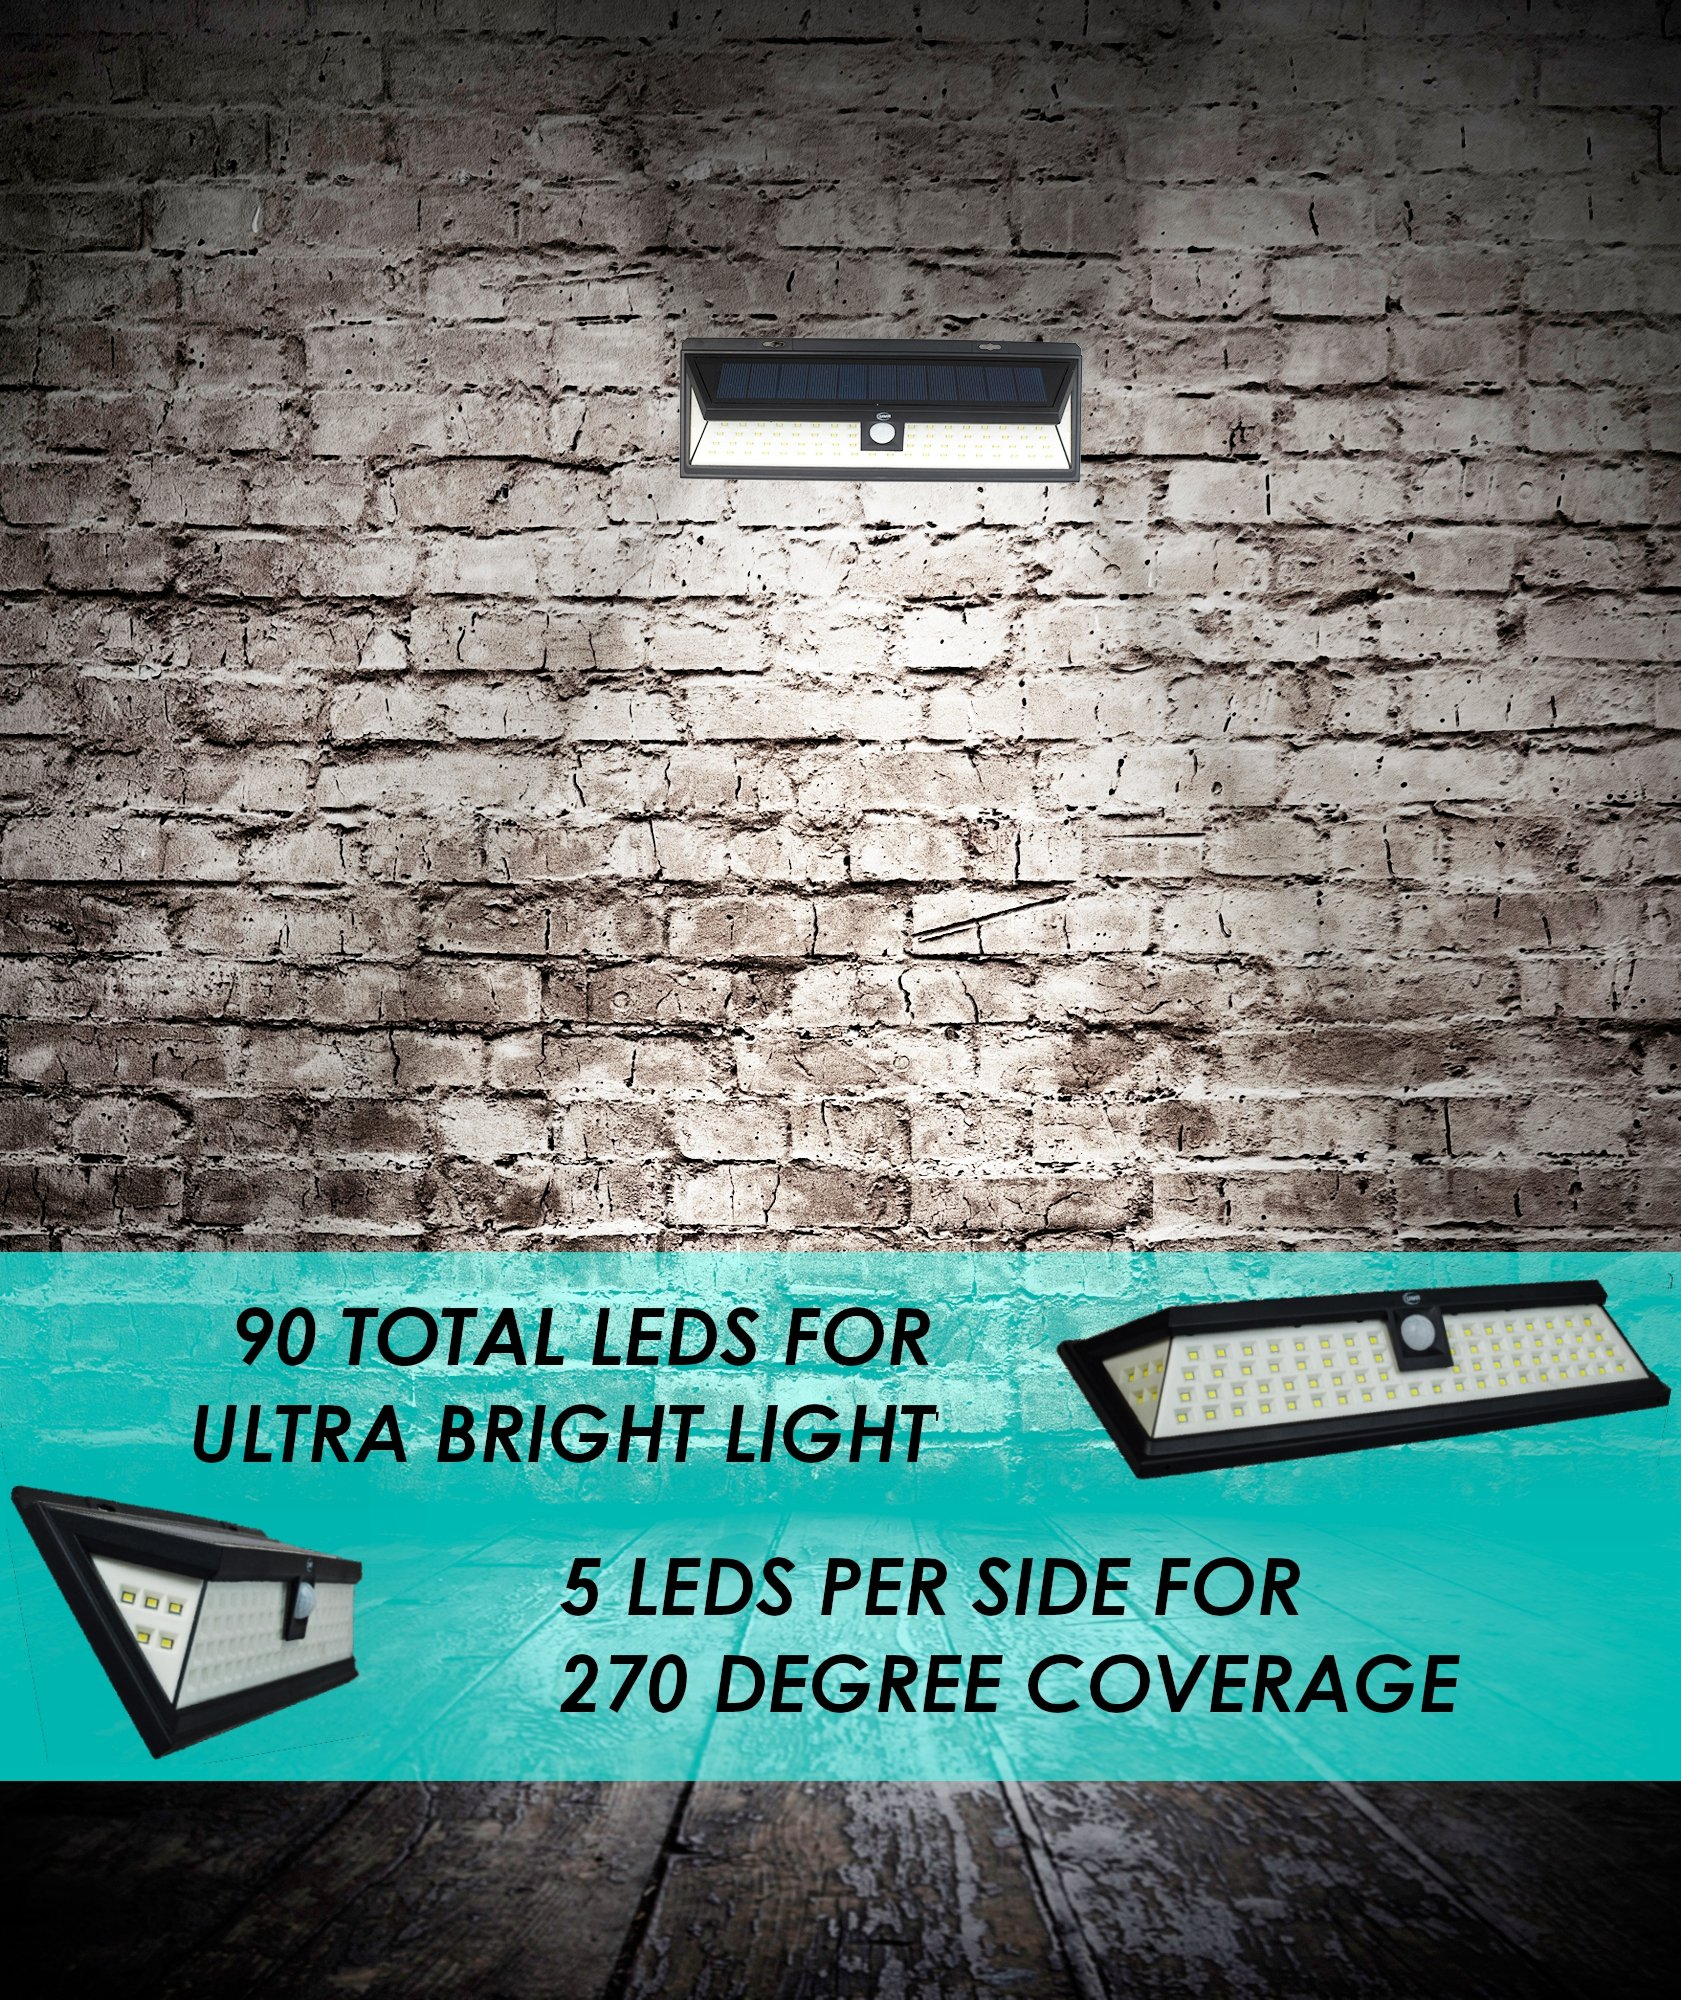 UMR 90 LED Solar Security Light - New 2018 Motion Sensor Outdoor Lighting w 5 LEDs Per Side, Dusk to Dawn Detector, Wireless Battery Power is Ultra-Bright for Exterior Outside Driveway Yard Patio Deck by UMR (Image #3)